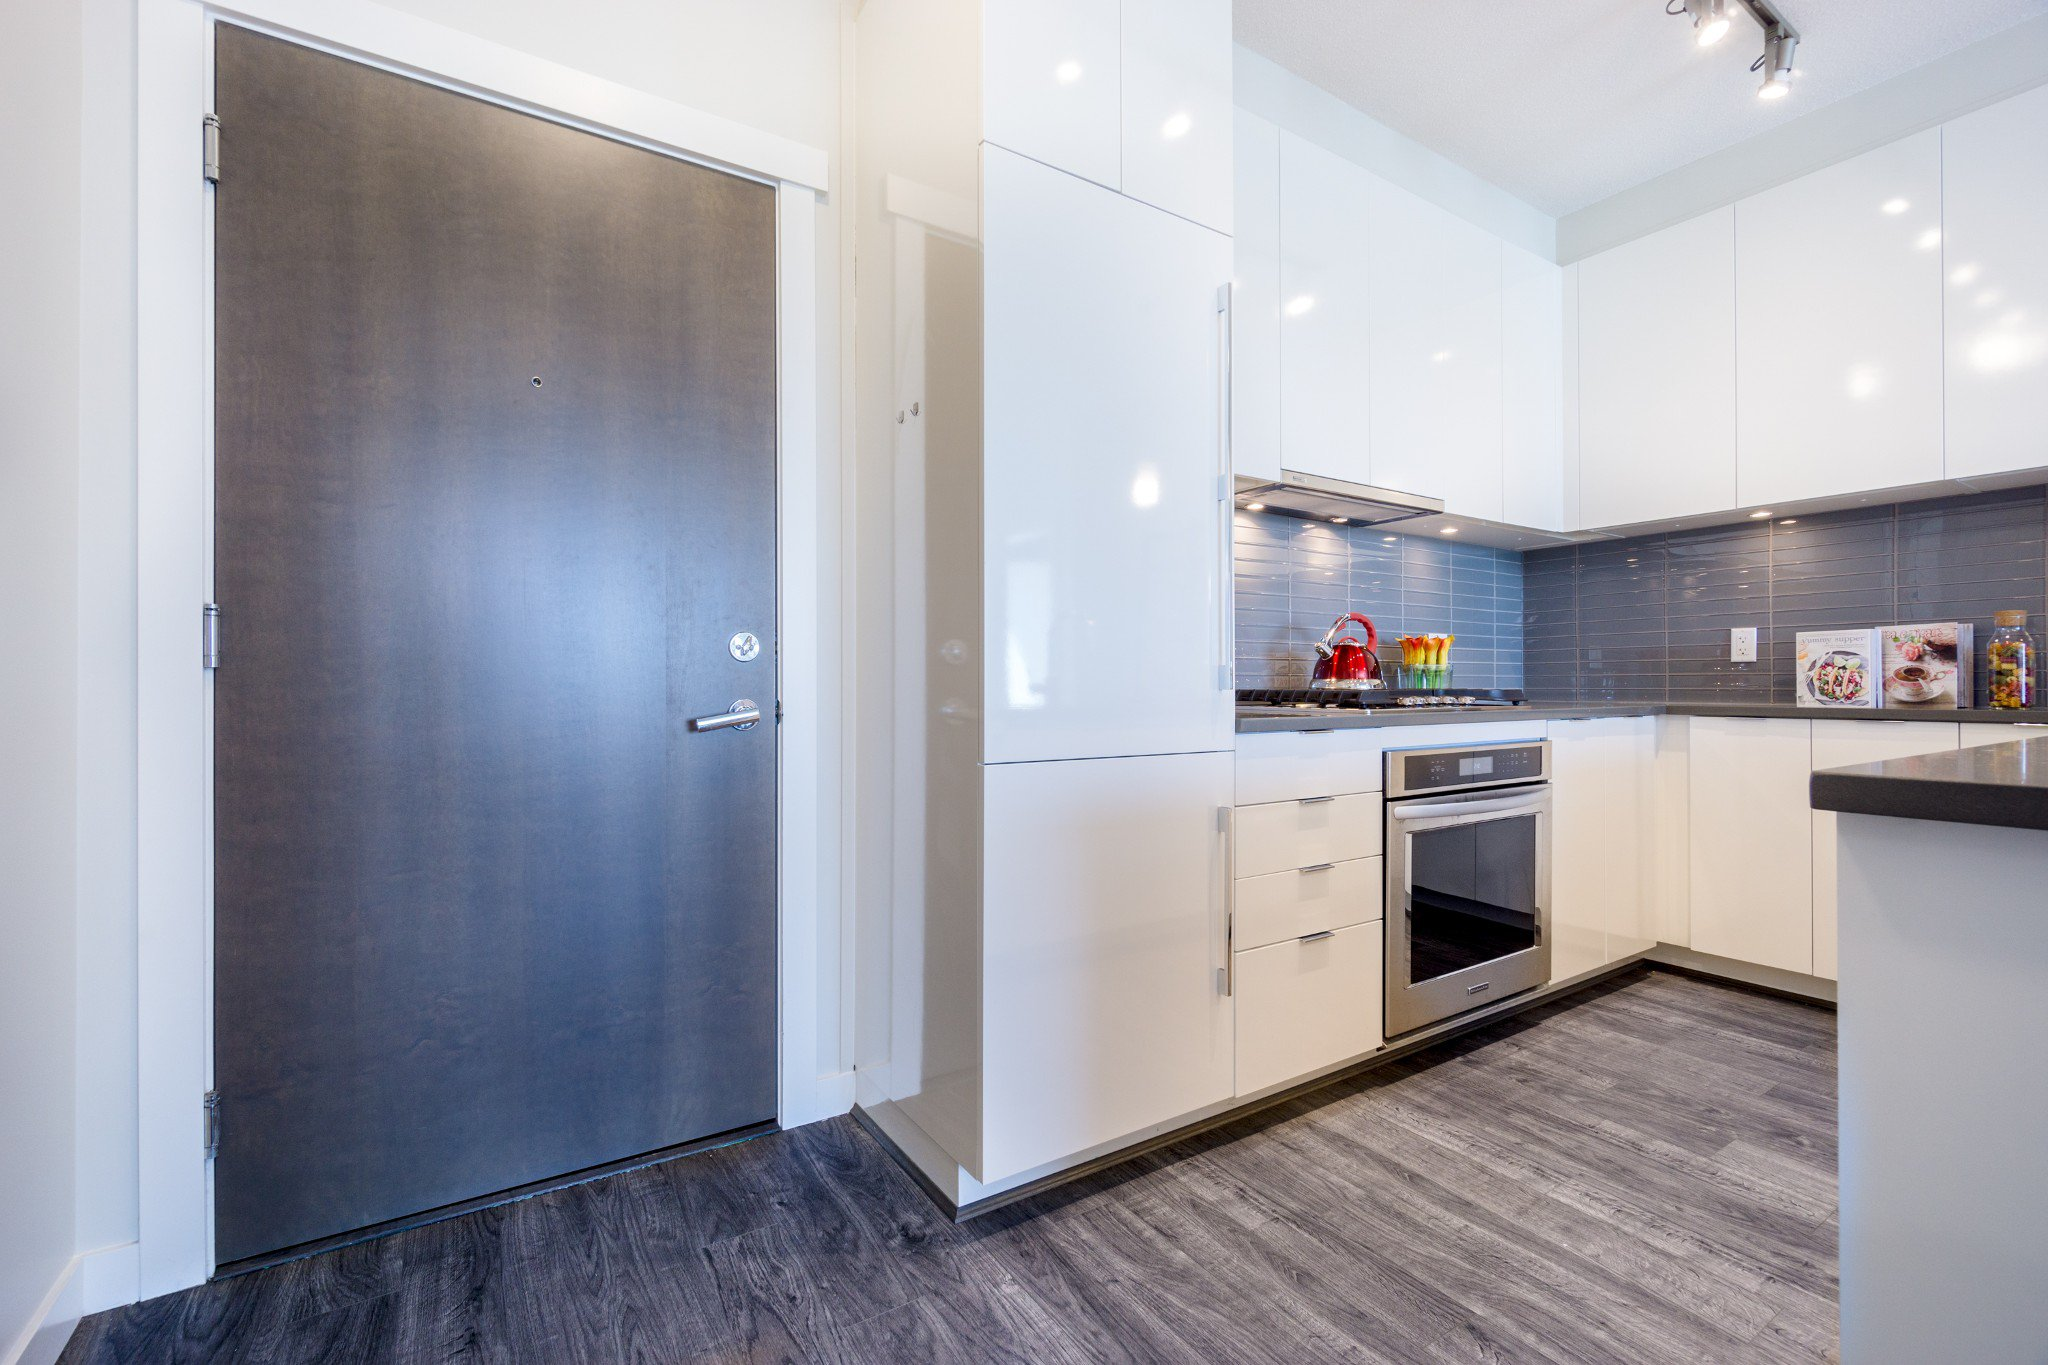 """Photo 5: Photos: 402 9311 ALEXANDRA Road in Richmond: West Cambie Condo for sale in """"ALEXANDRA COURT"""" : MLS®# R2266613"""